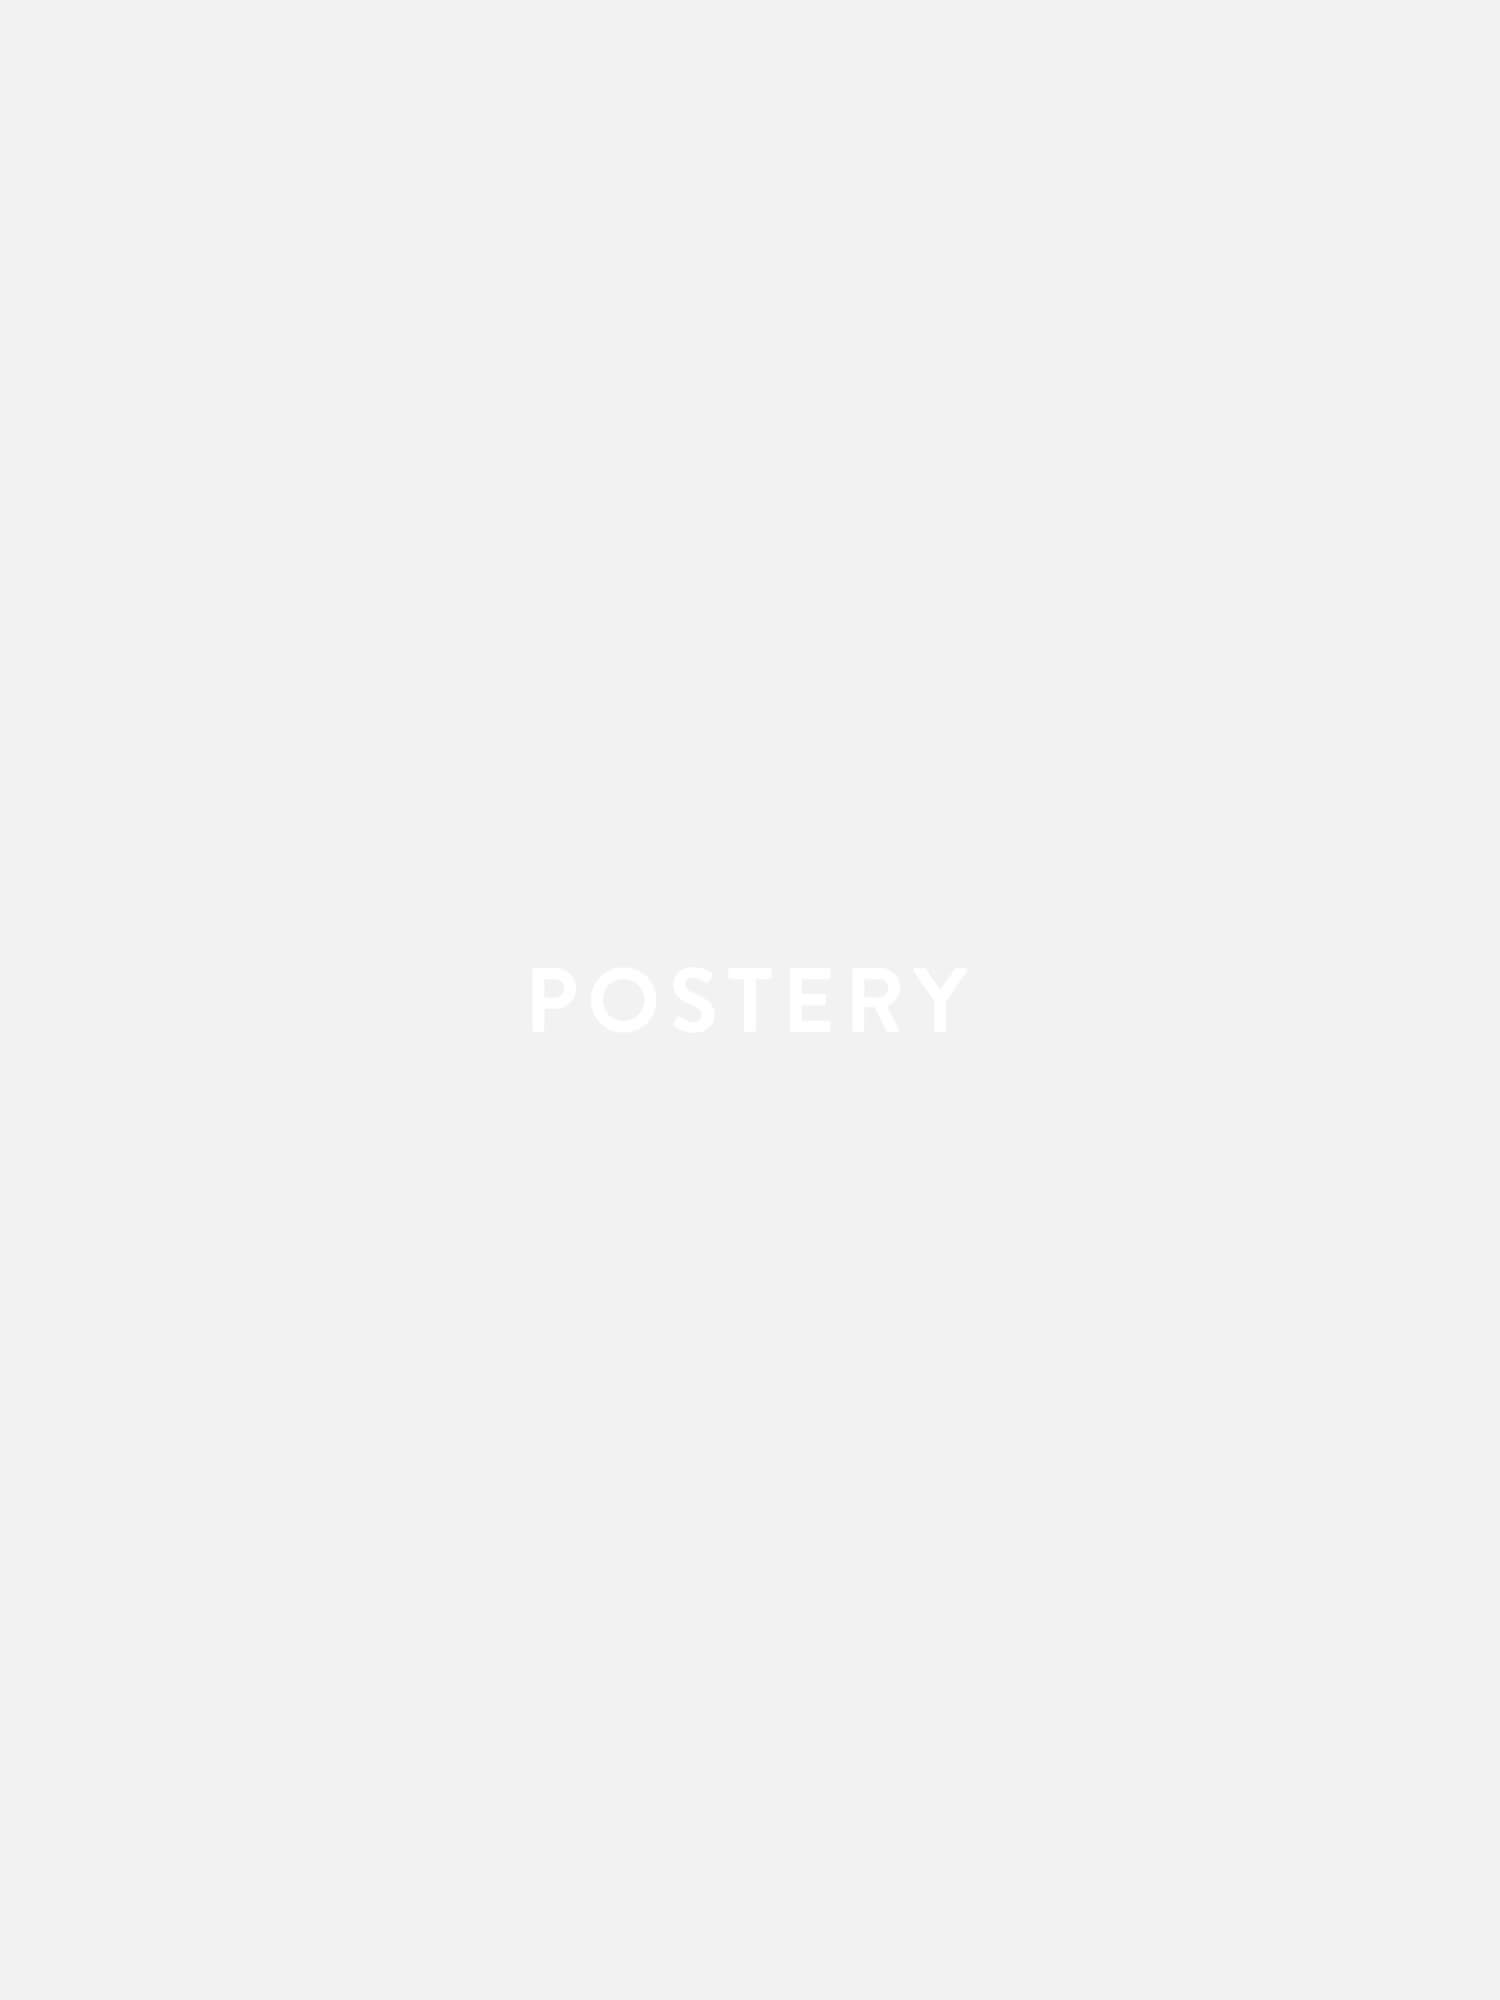 Green Cacti Poster